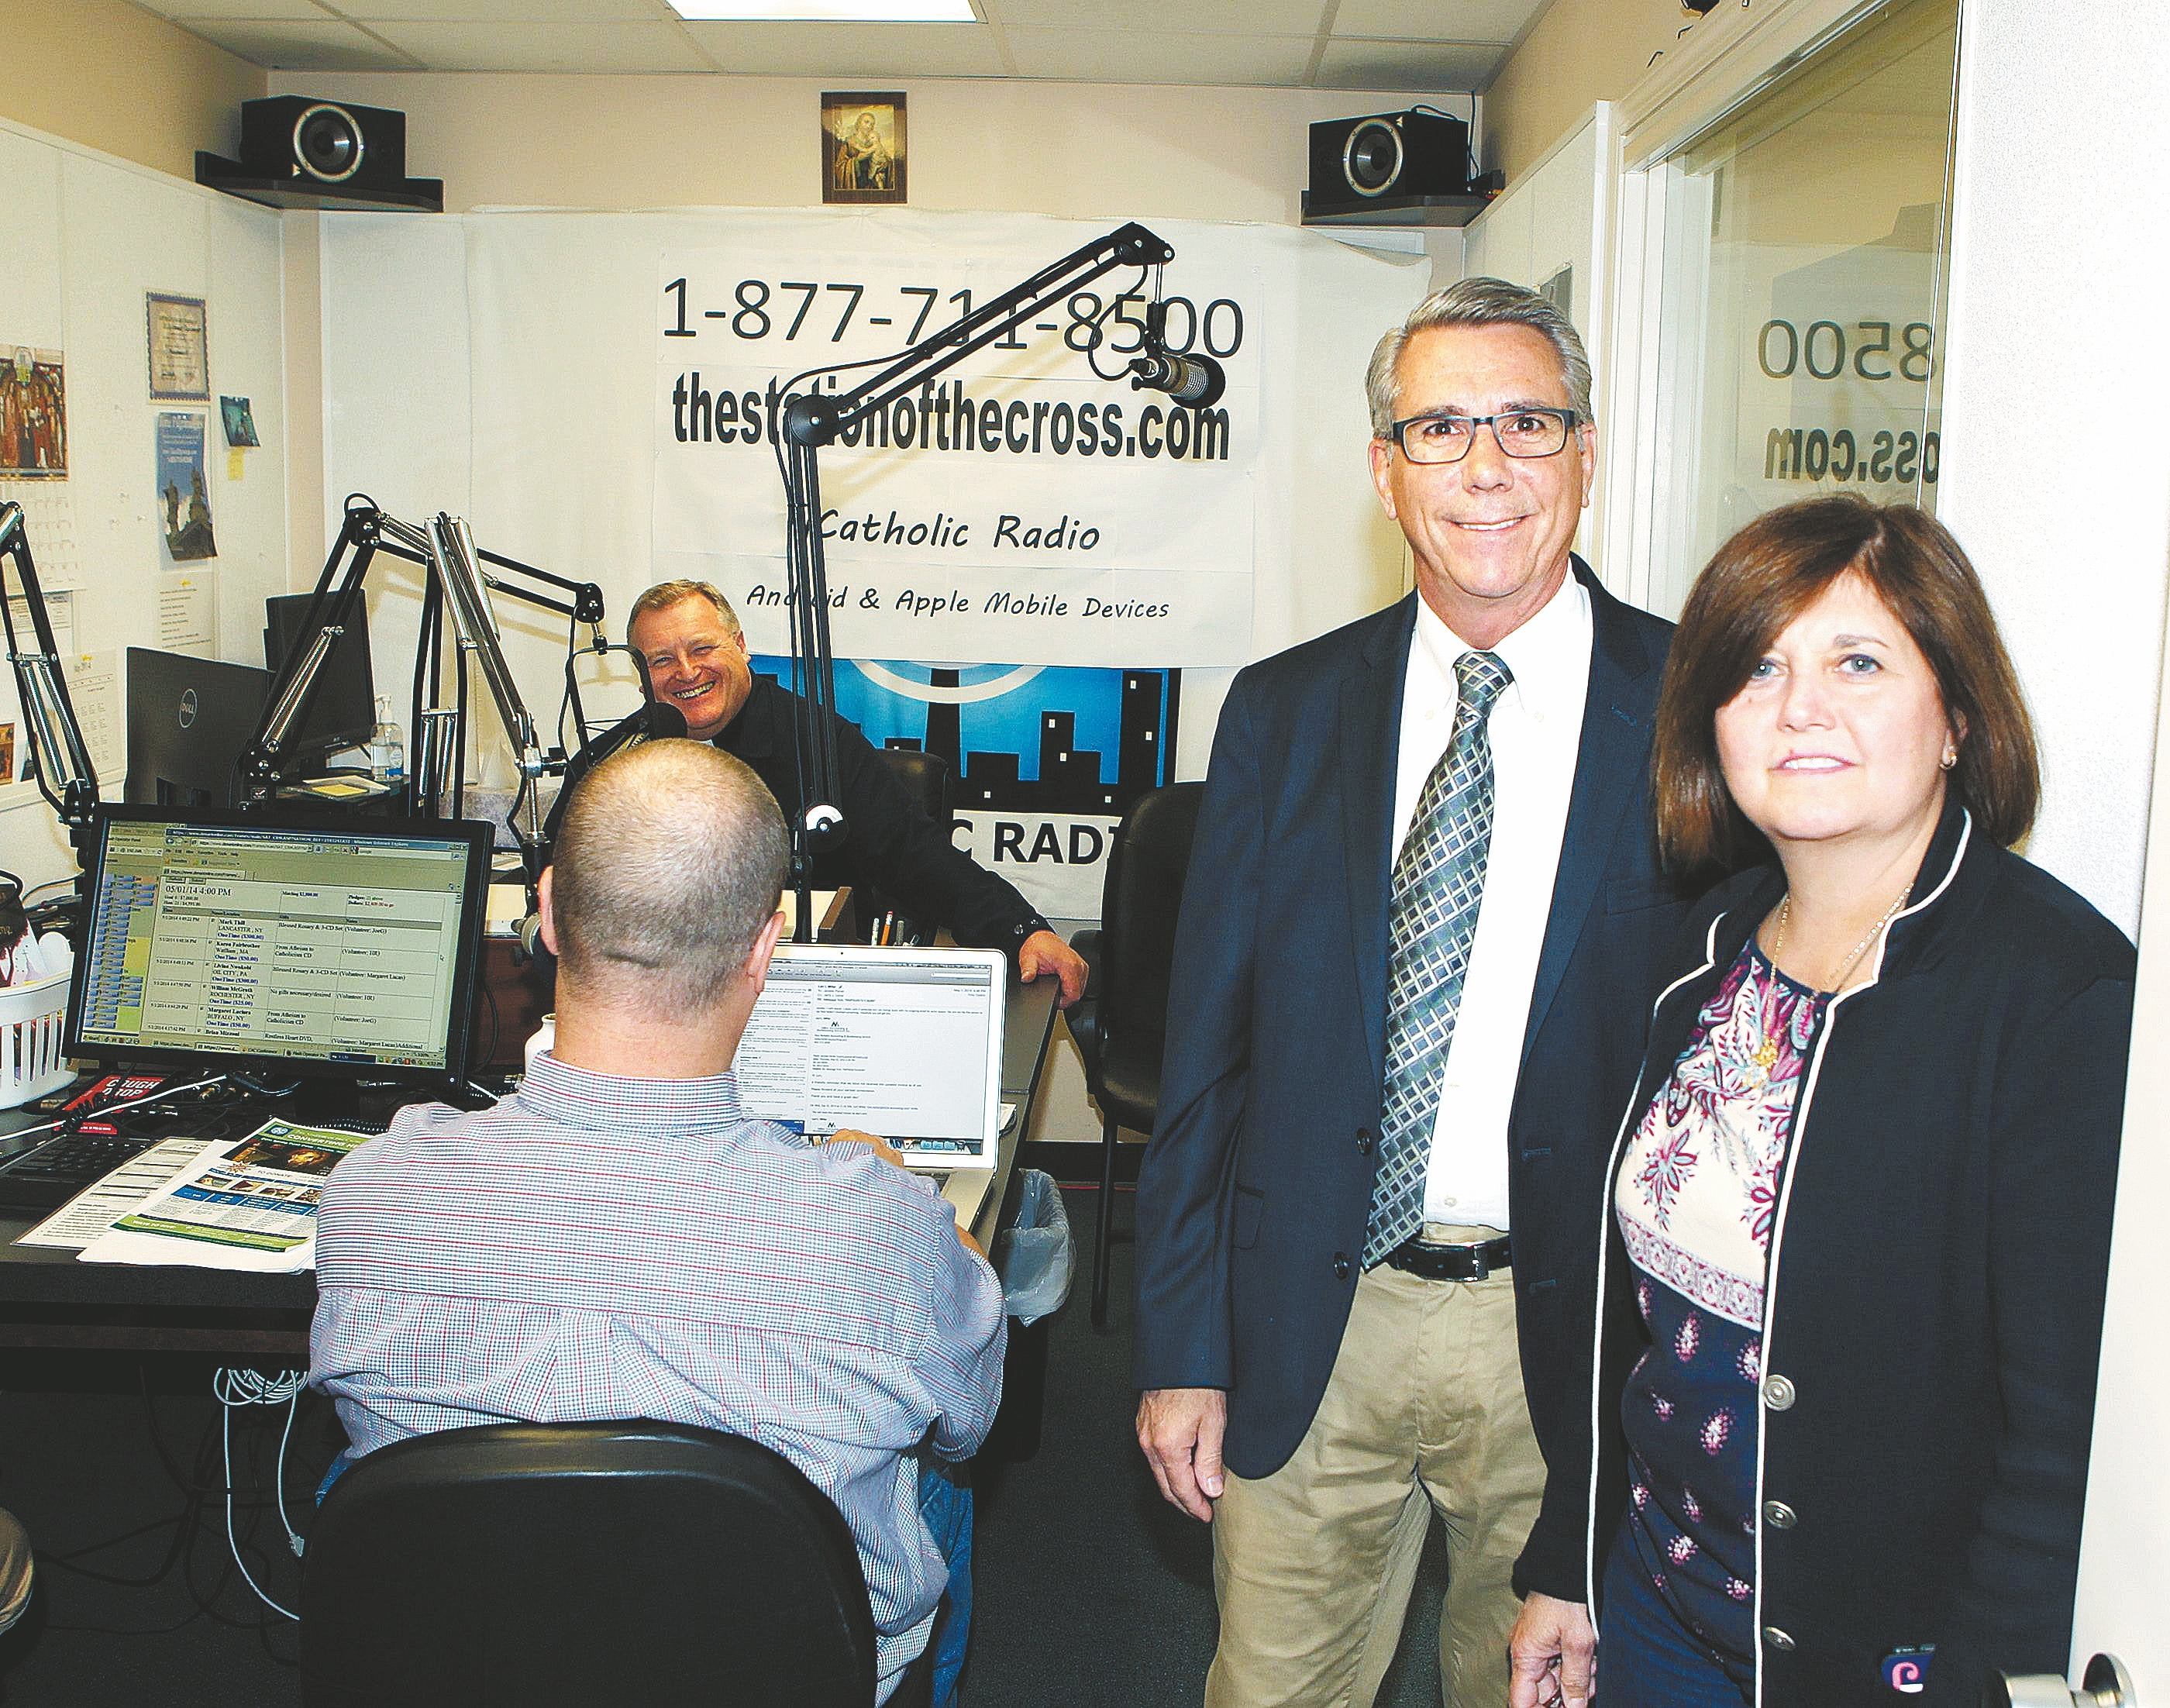 Joanne and Jim Wright, the co-founders of WLOF, are seen inside the WLOF Catholic Radio studios in early May. WLOF is a leading light in the Catholic Church's international push for evangelization.